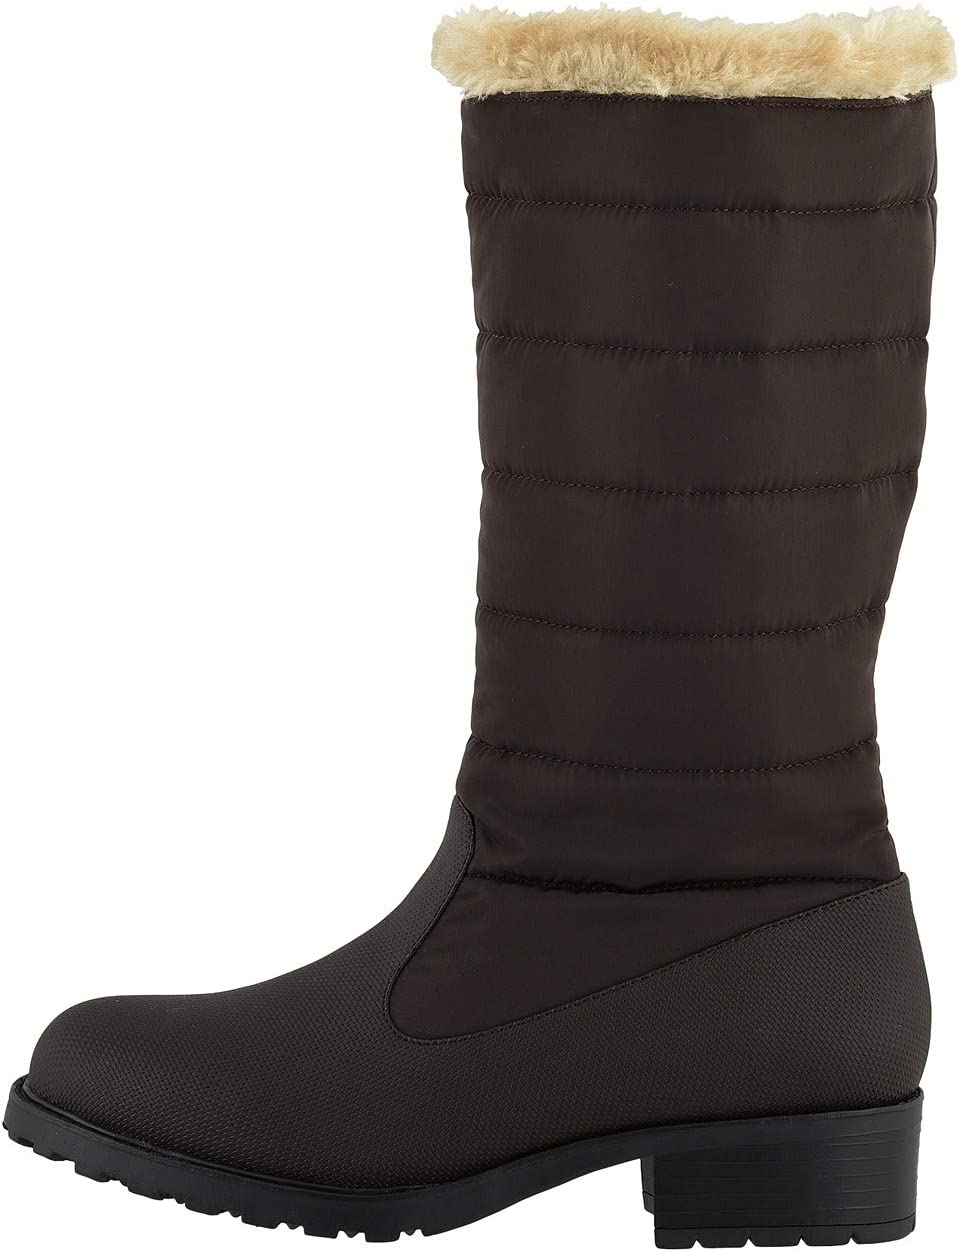 Trotters Benji High | Women's shoes | 2020 Newest